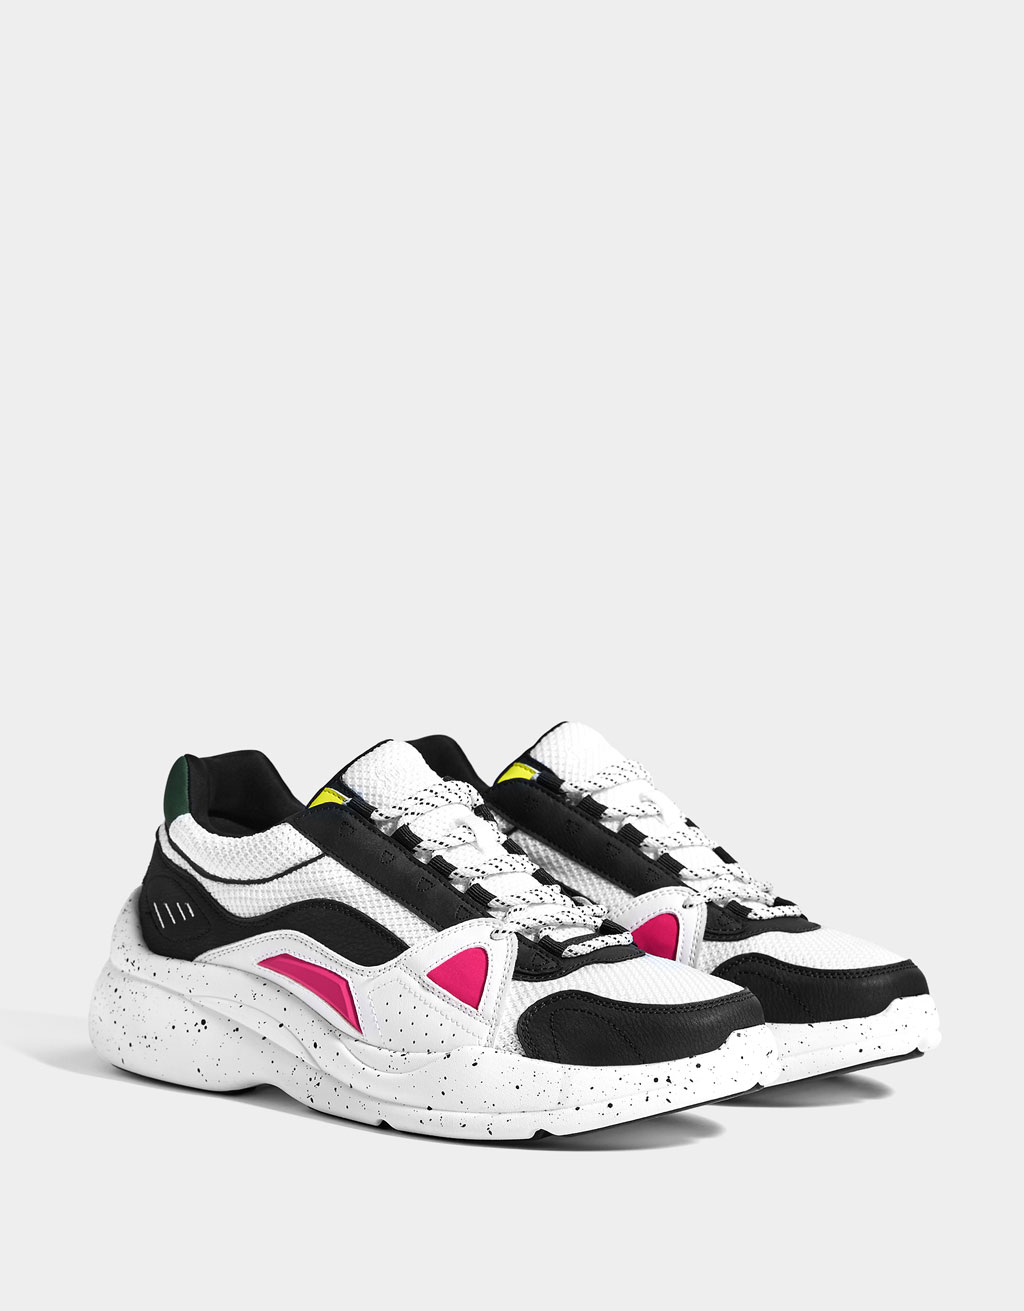 Women's trainers with multicoloured pieces